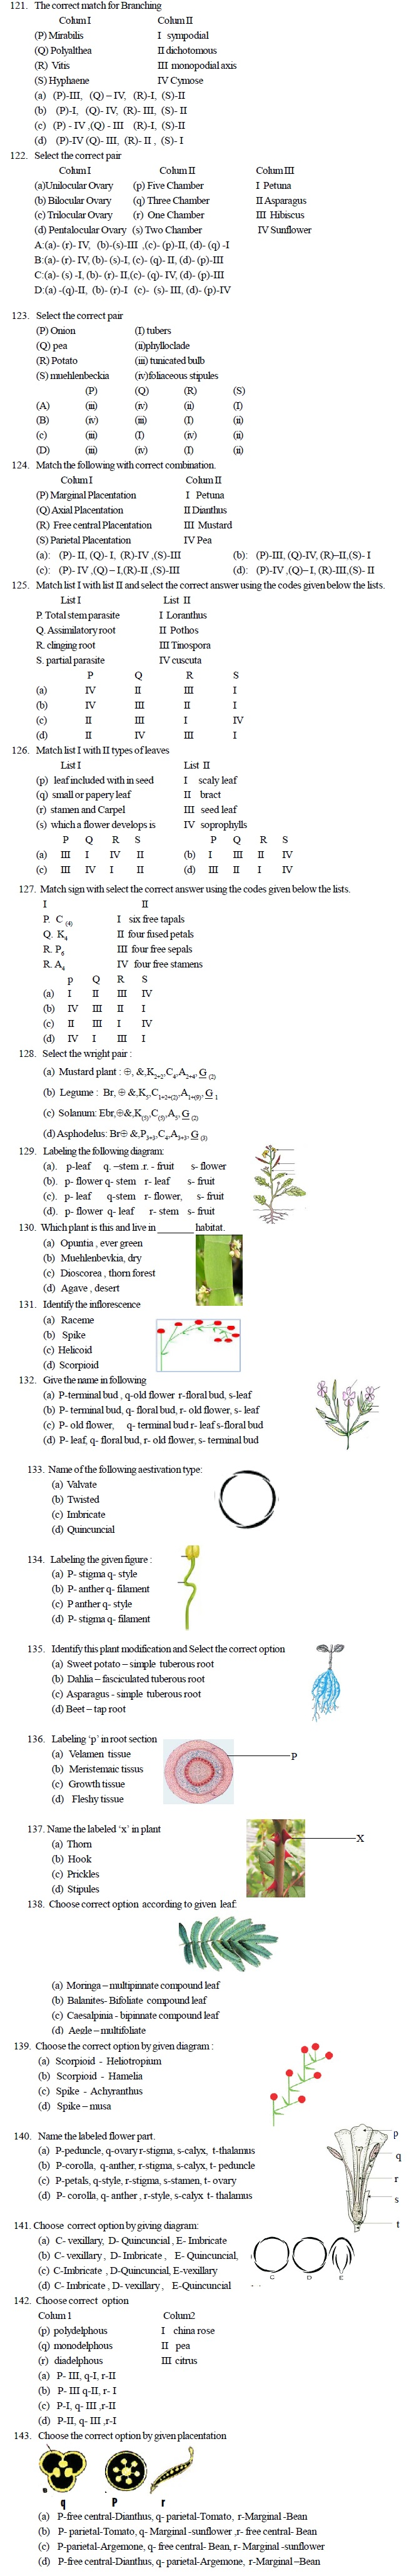 AIPMT Question Bank Biology - Morphology of Plants